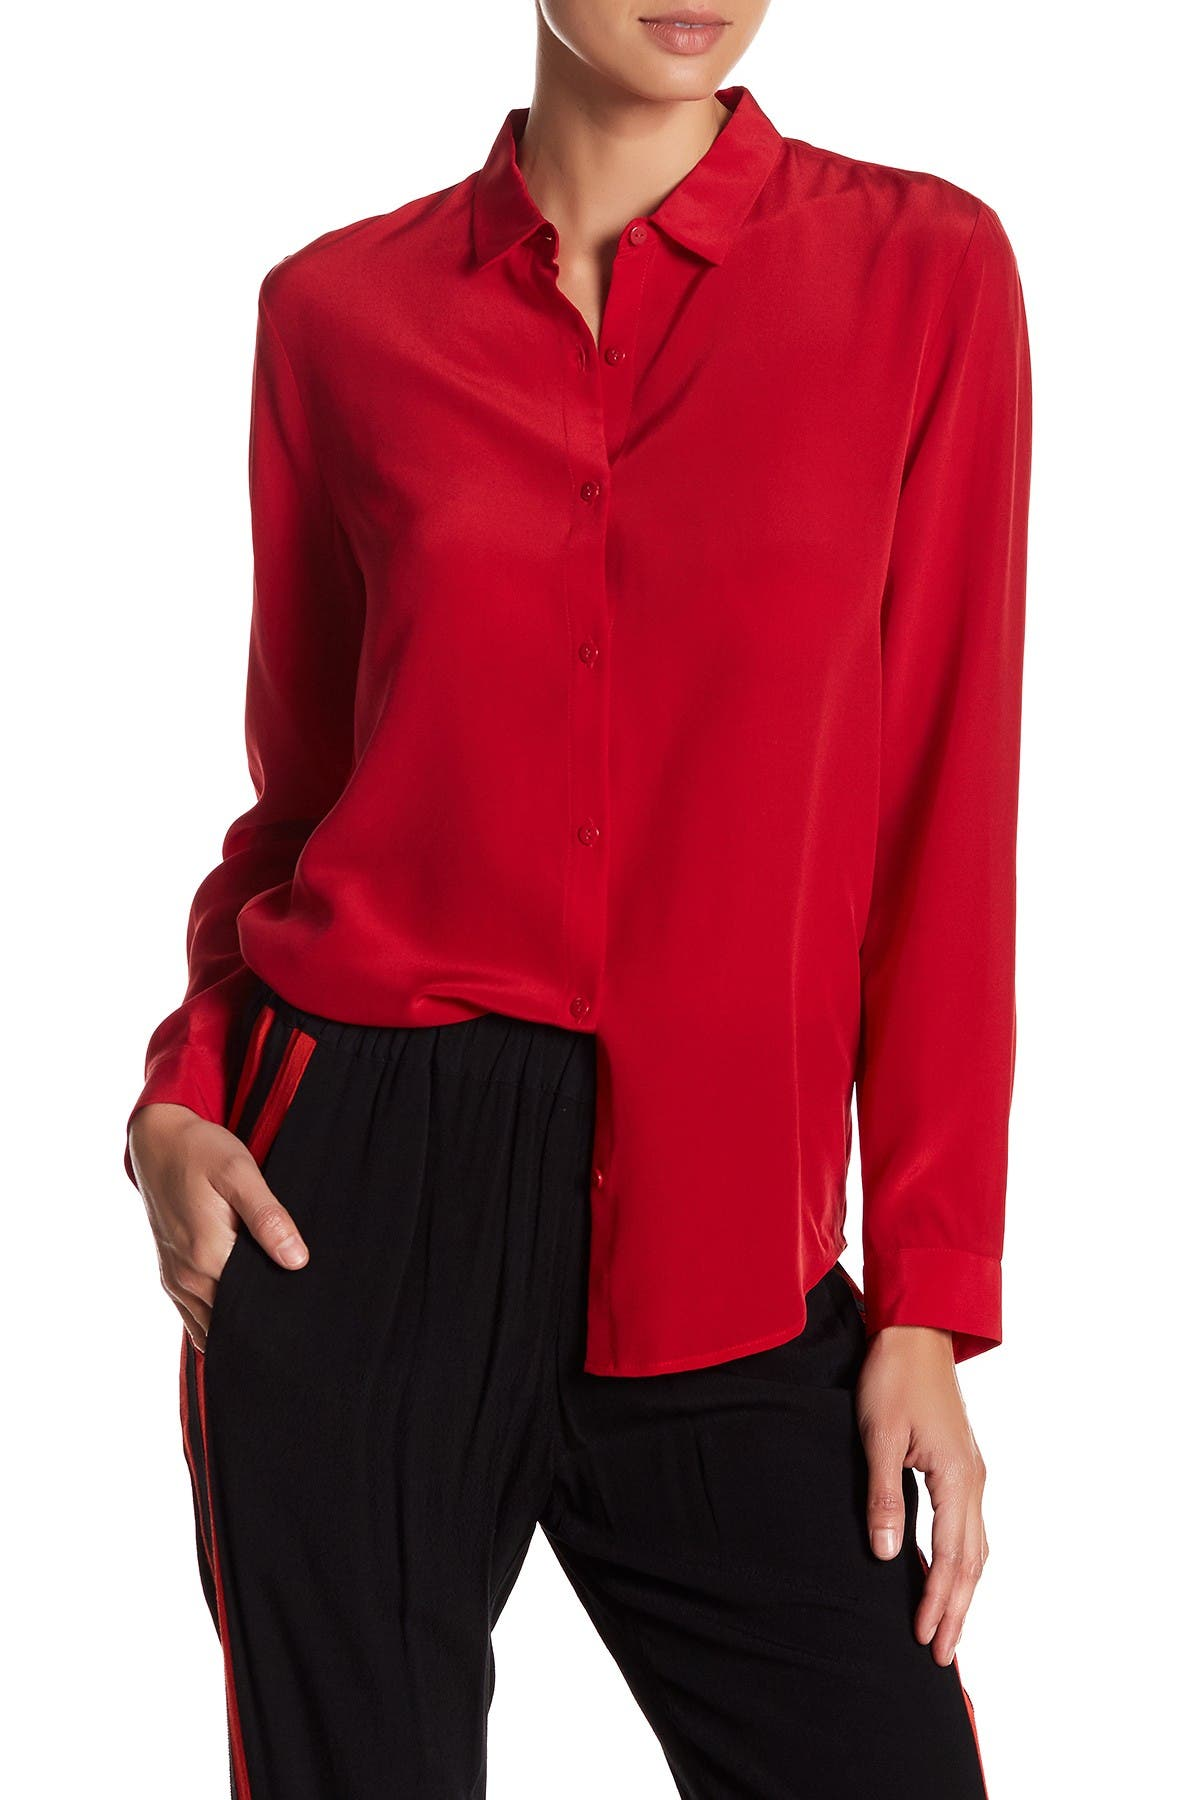 Image of The Kooples Silk Blouse